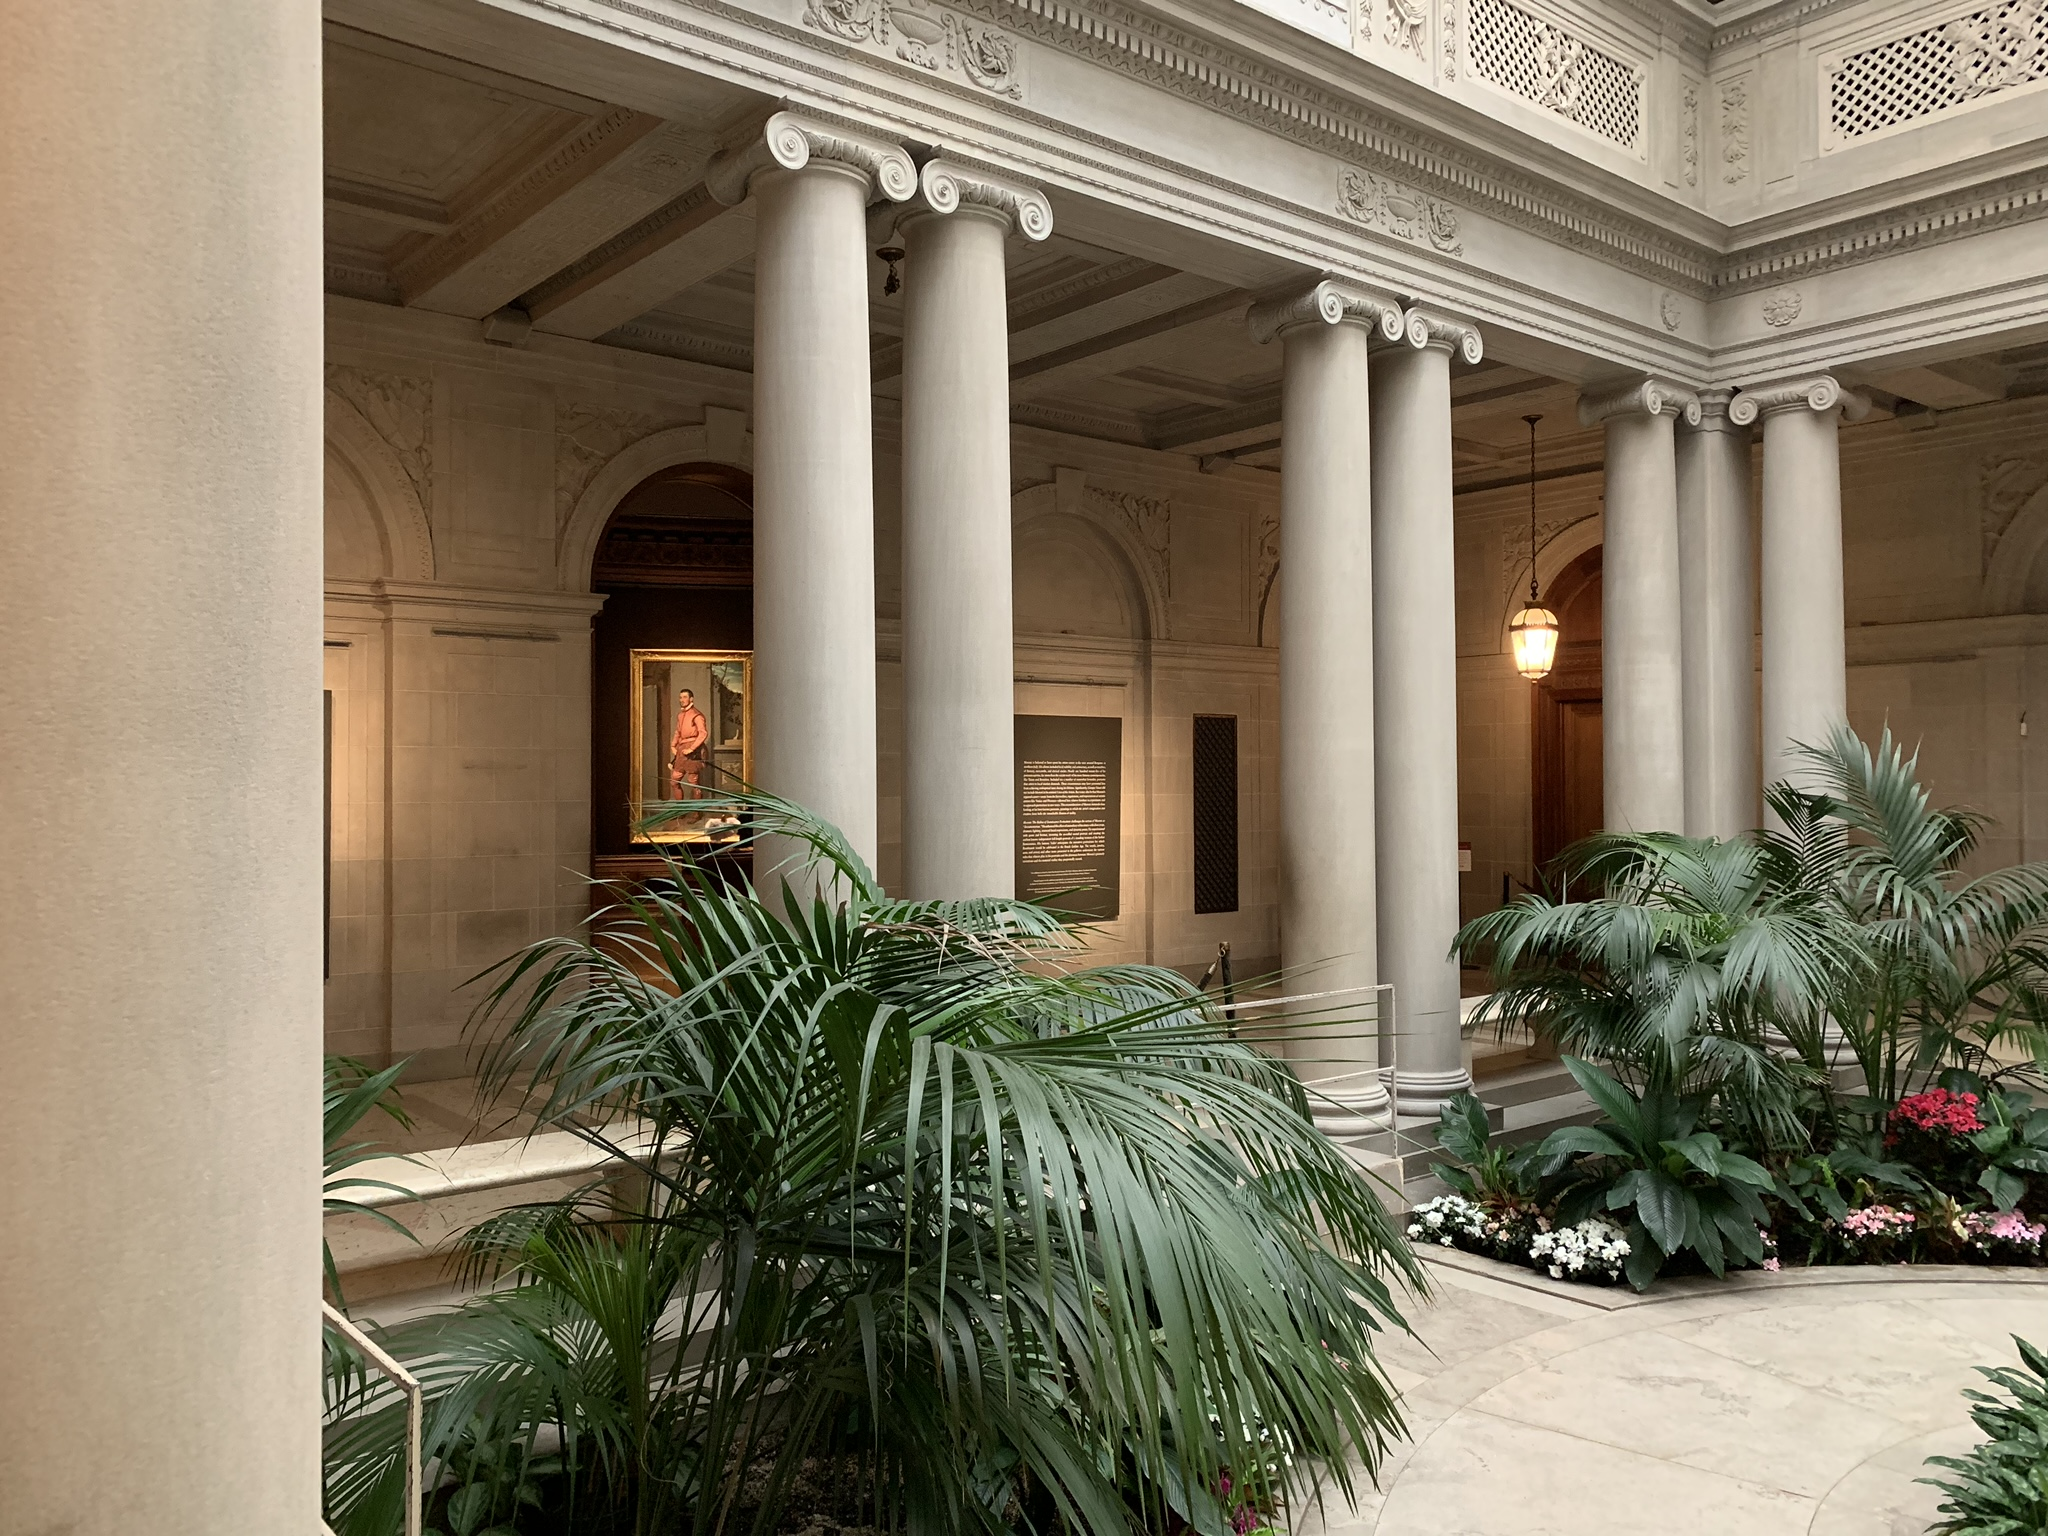 Moroni's Man in Pink visible from the Palm Court at the Frick - the only place where photographs are allowed.